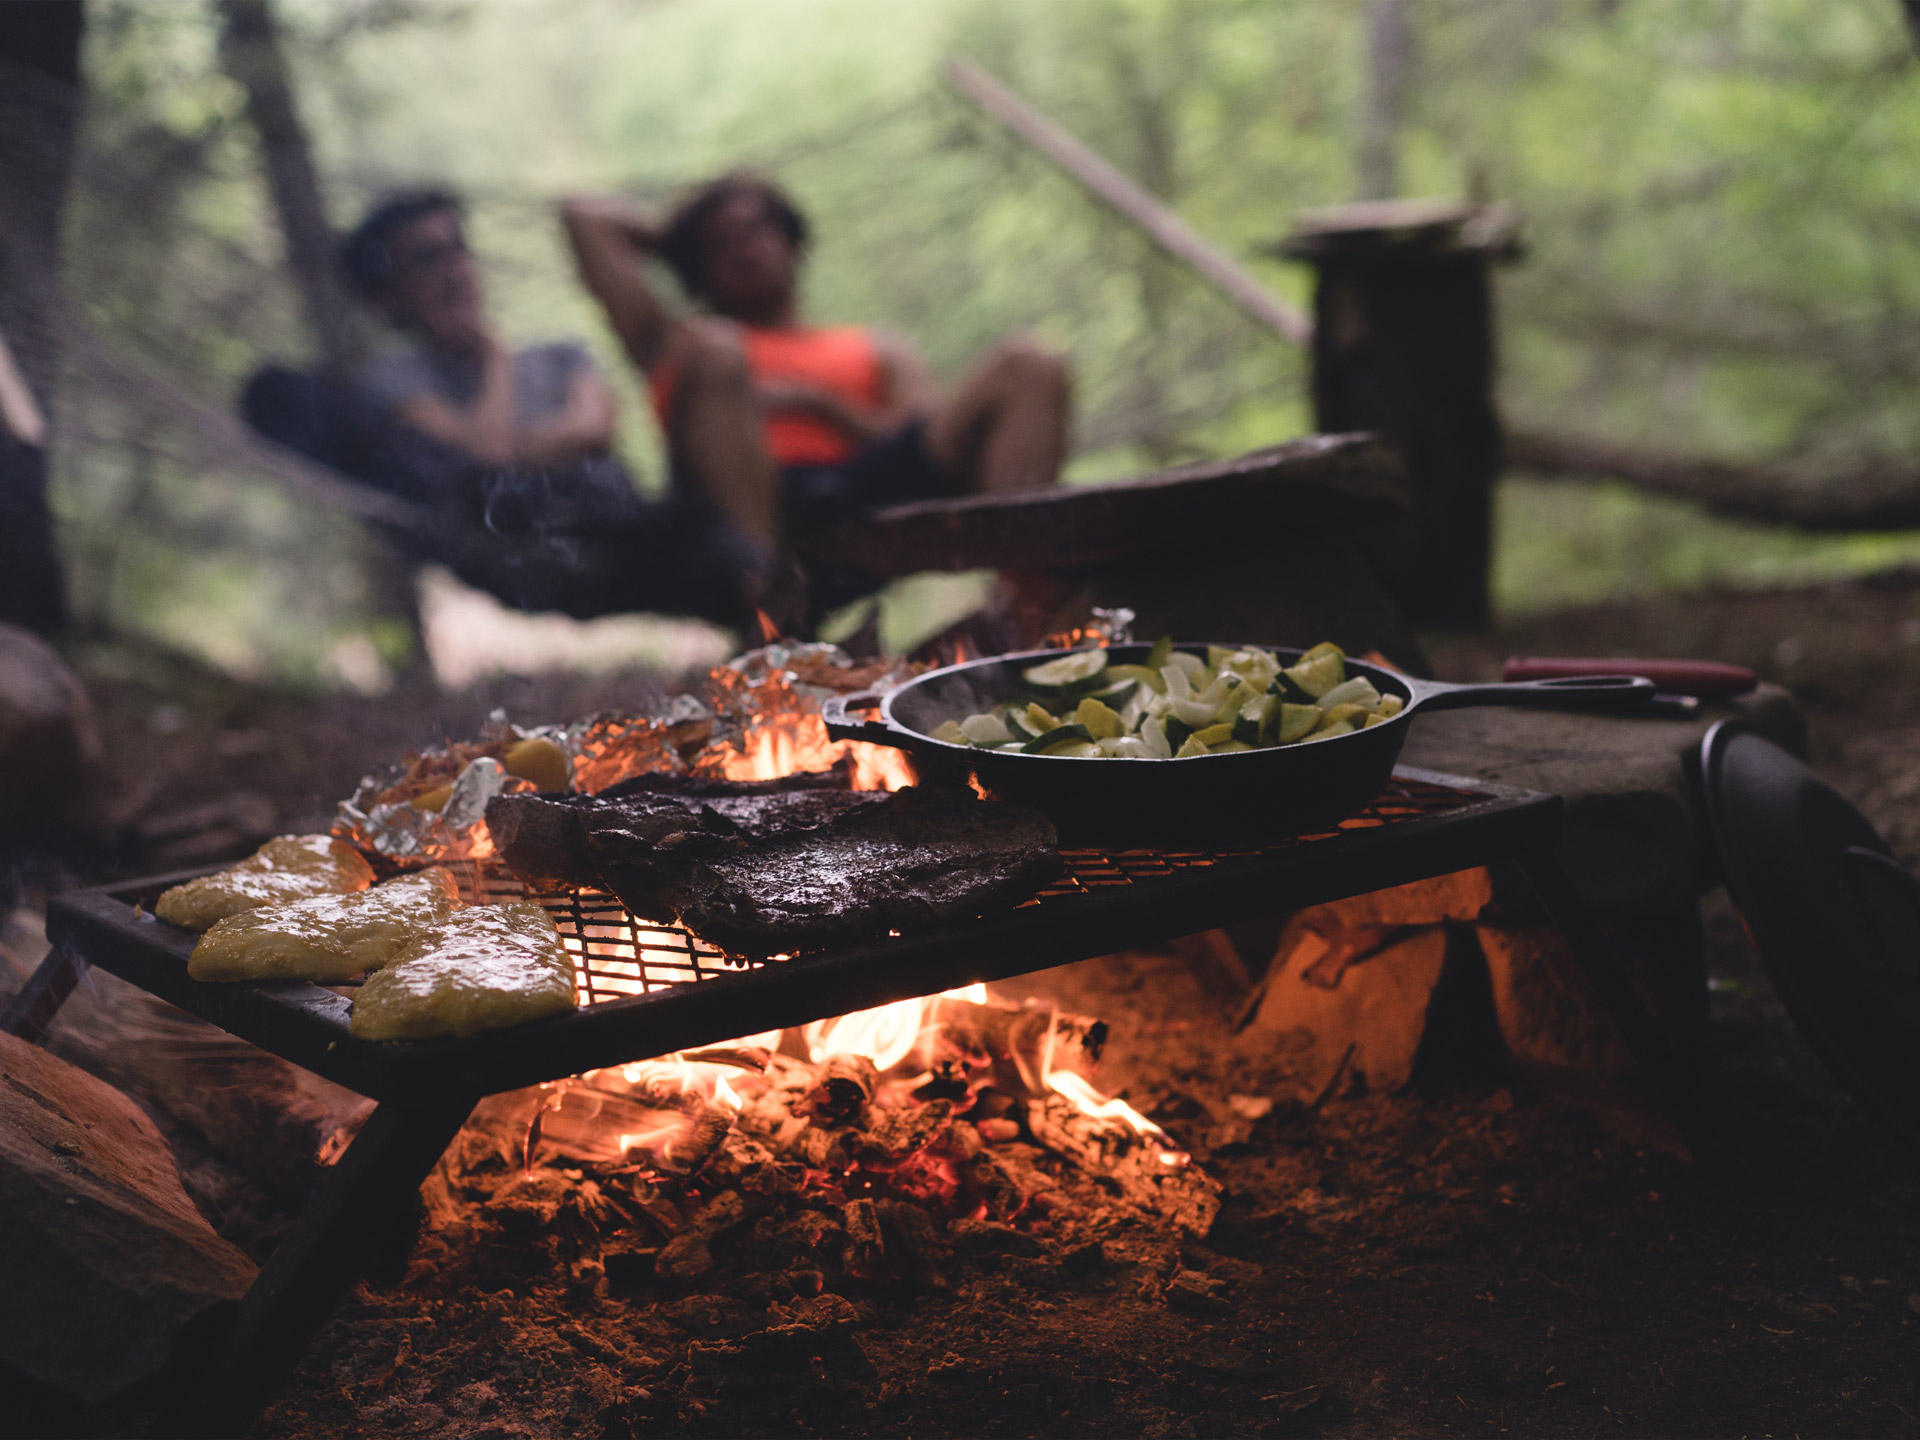 Grillen, Fotocredit: Myles Tan auf Unsplash